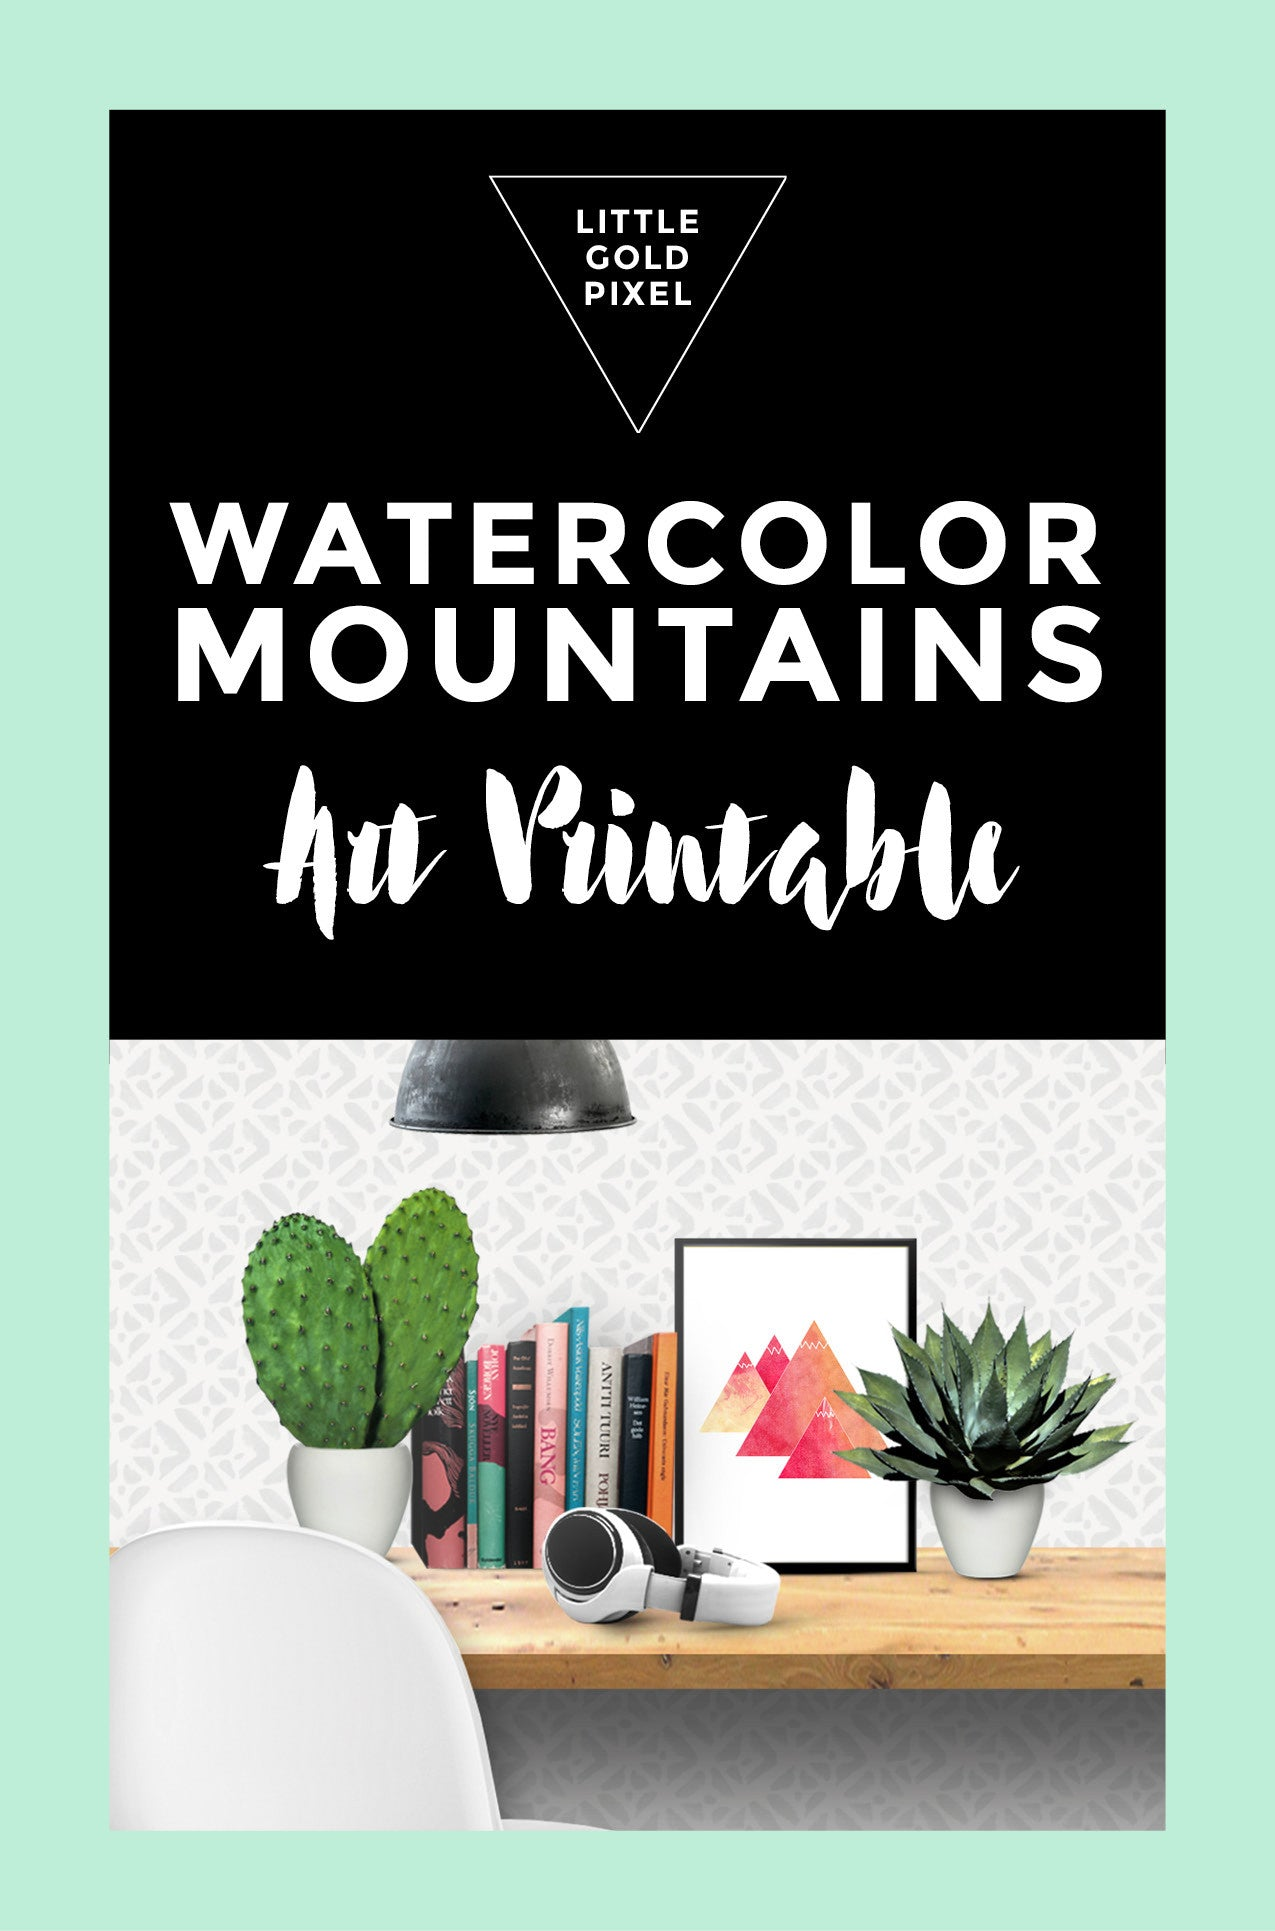 Watercolor Mountains Adventure Art Printable - Little Gold Pixel - 4